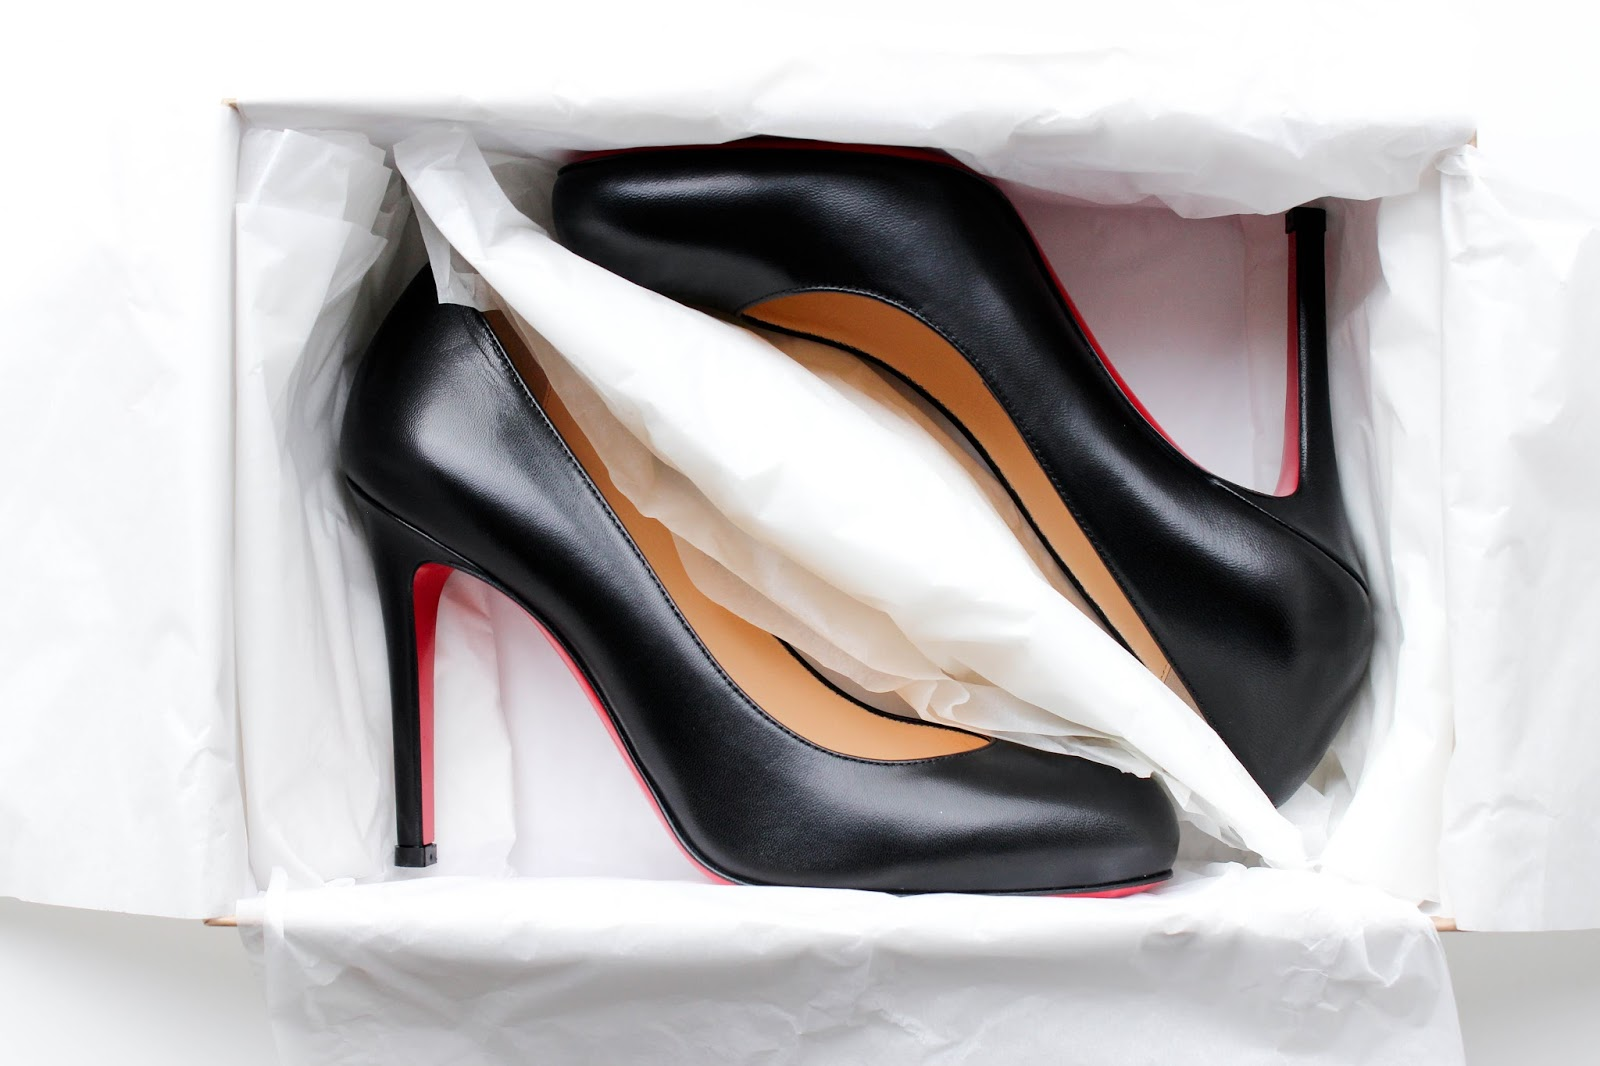 newest c7f42 754bc My First Pair of Christian Louboutin Heels: 'Simple' Single ...